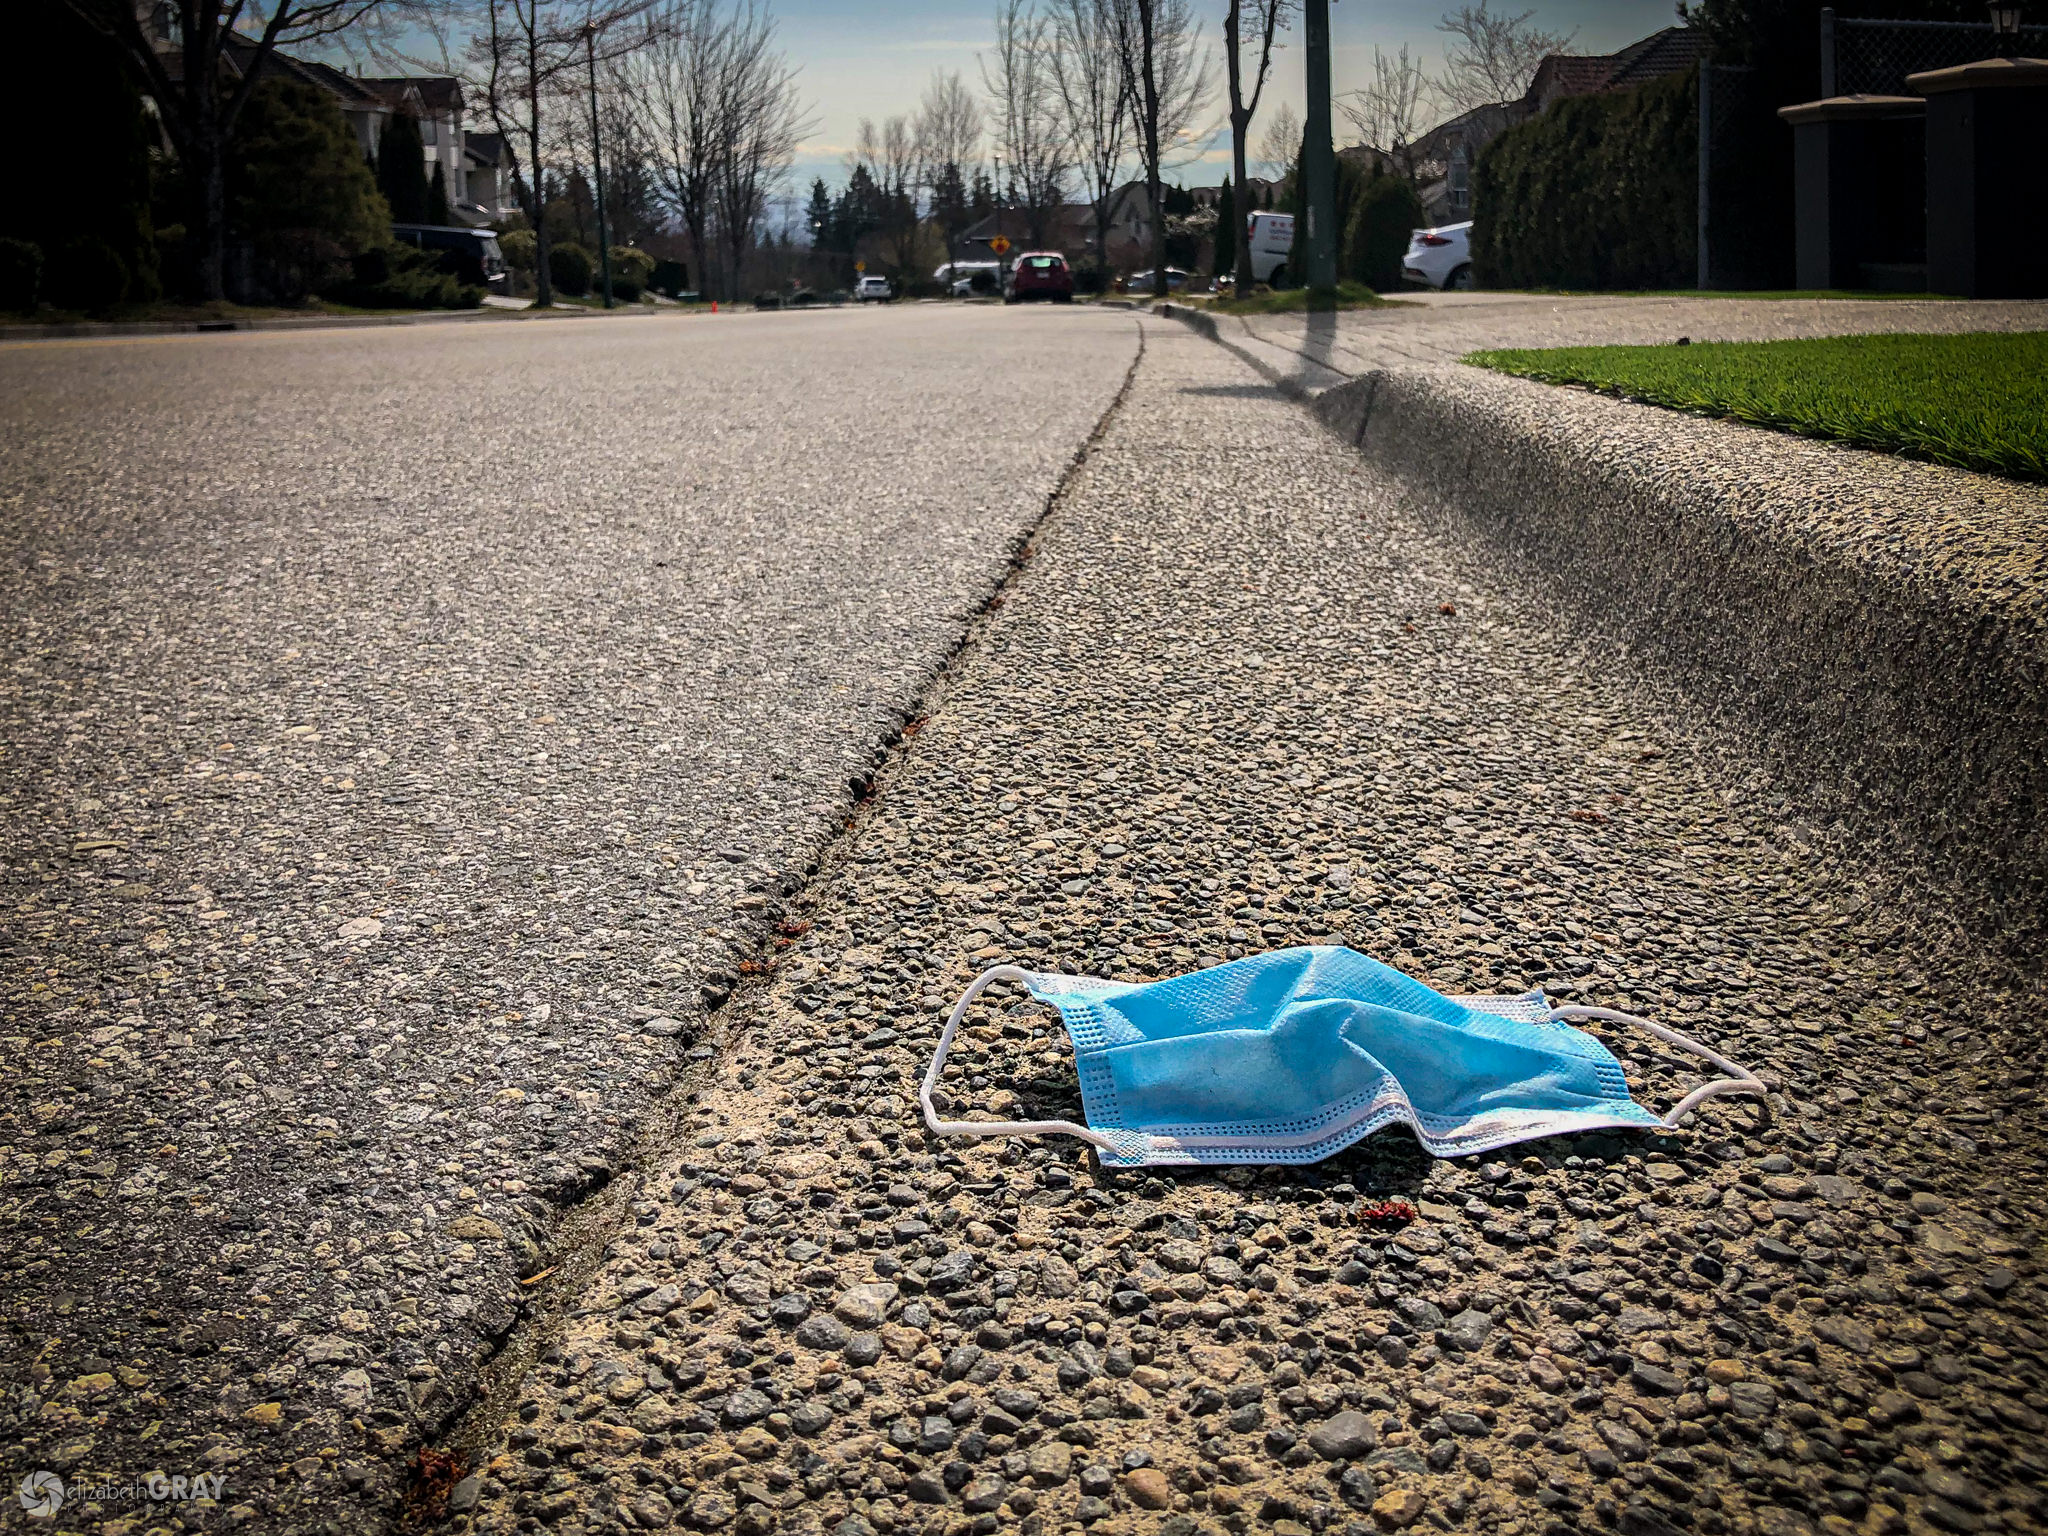 Discarded Surgical Mask